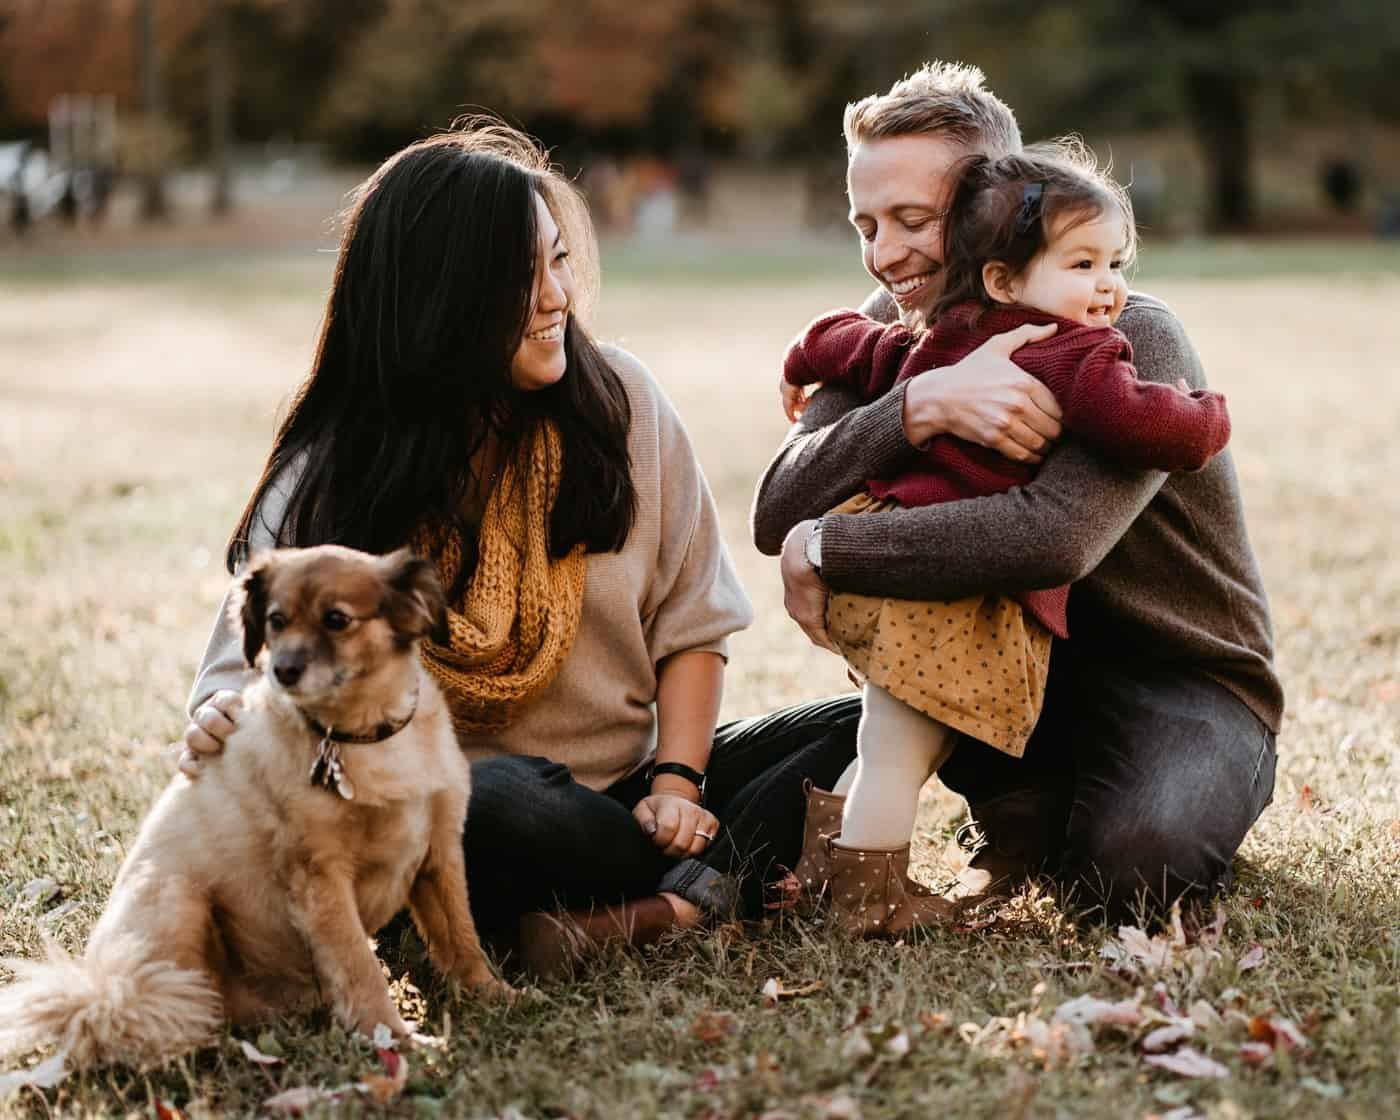 Mom, dad, little girl and their dog outside as girl hugs dad